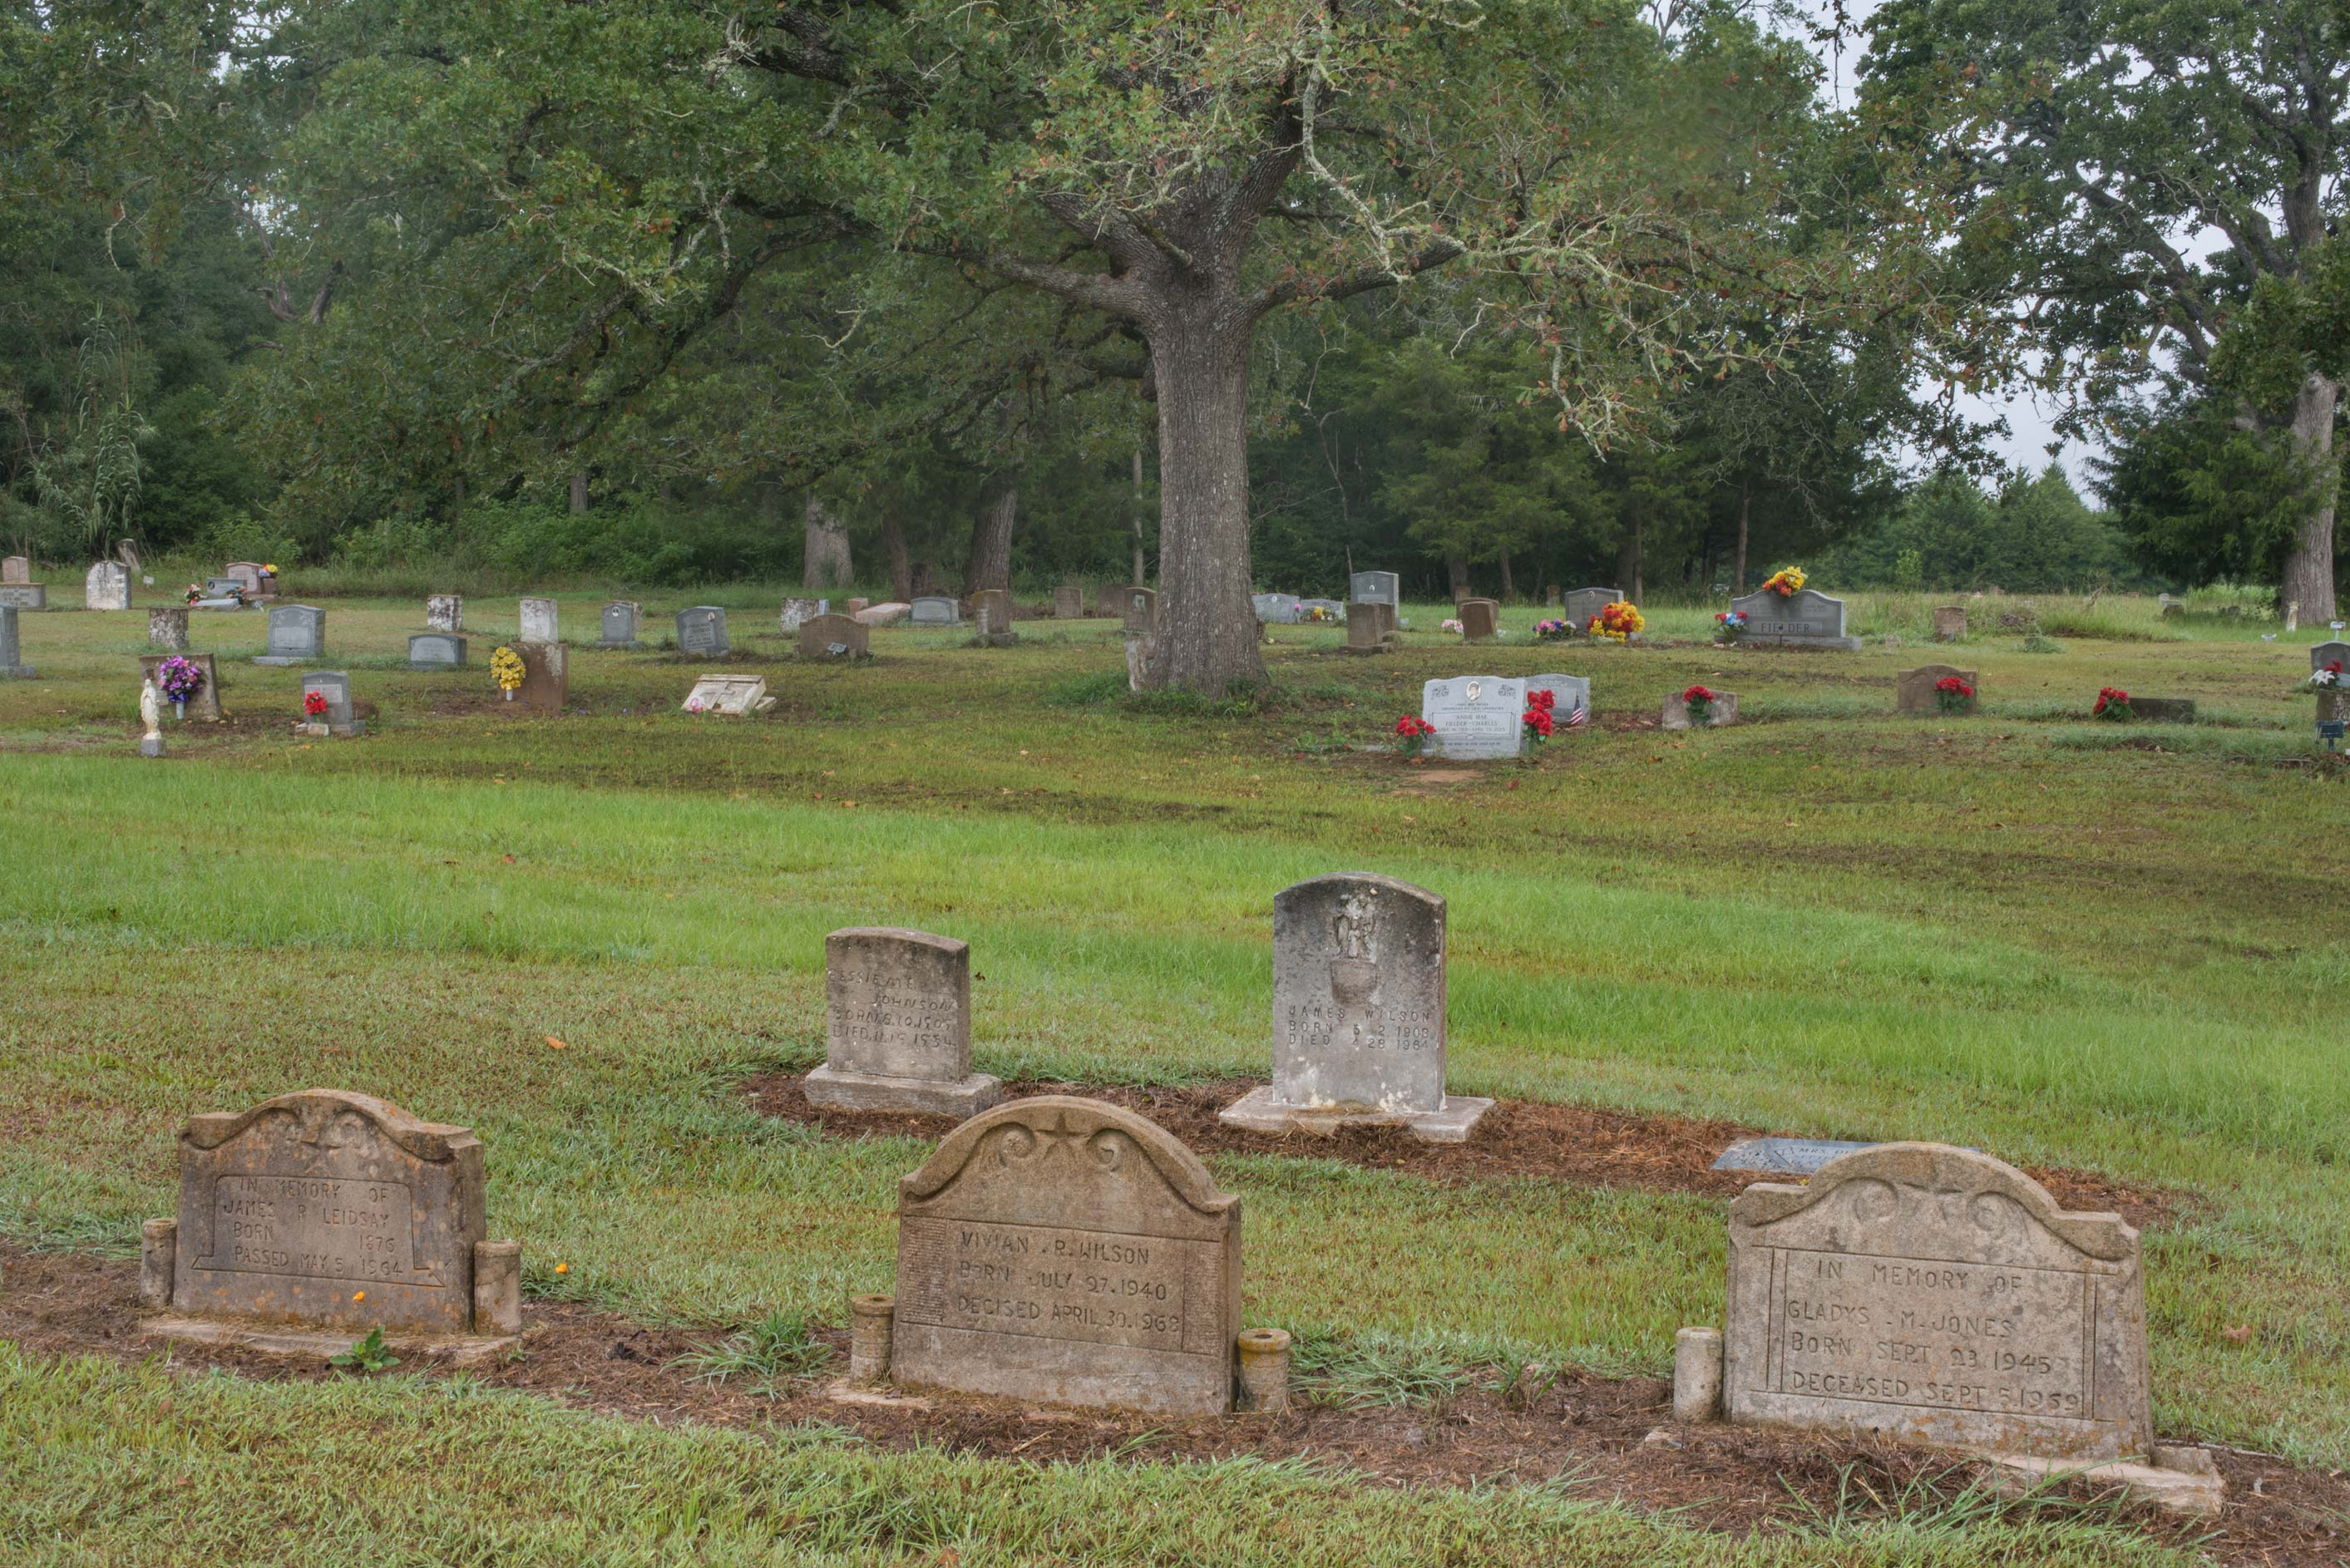 Old tombs in Washington Cemetery. Washington, Texas